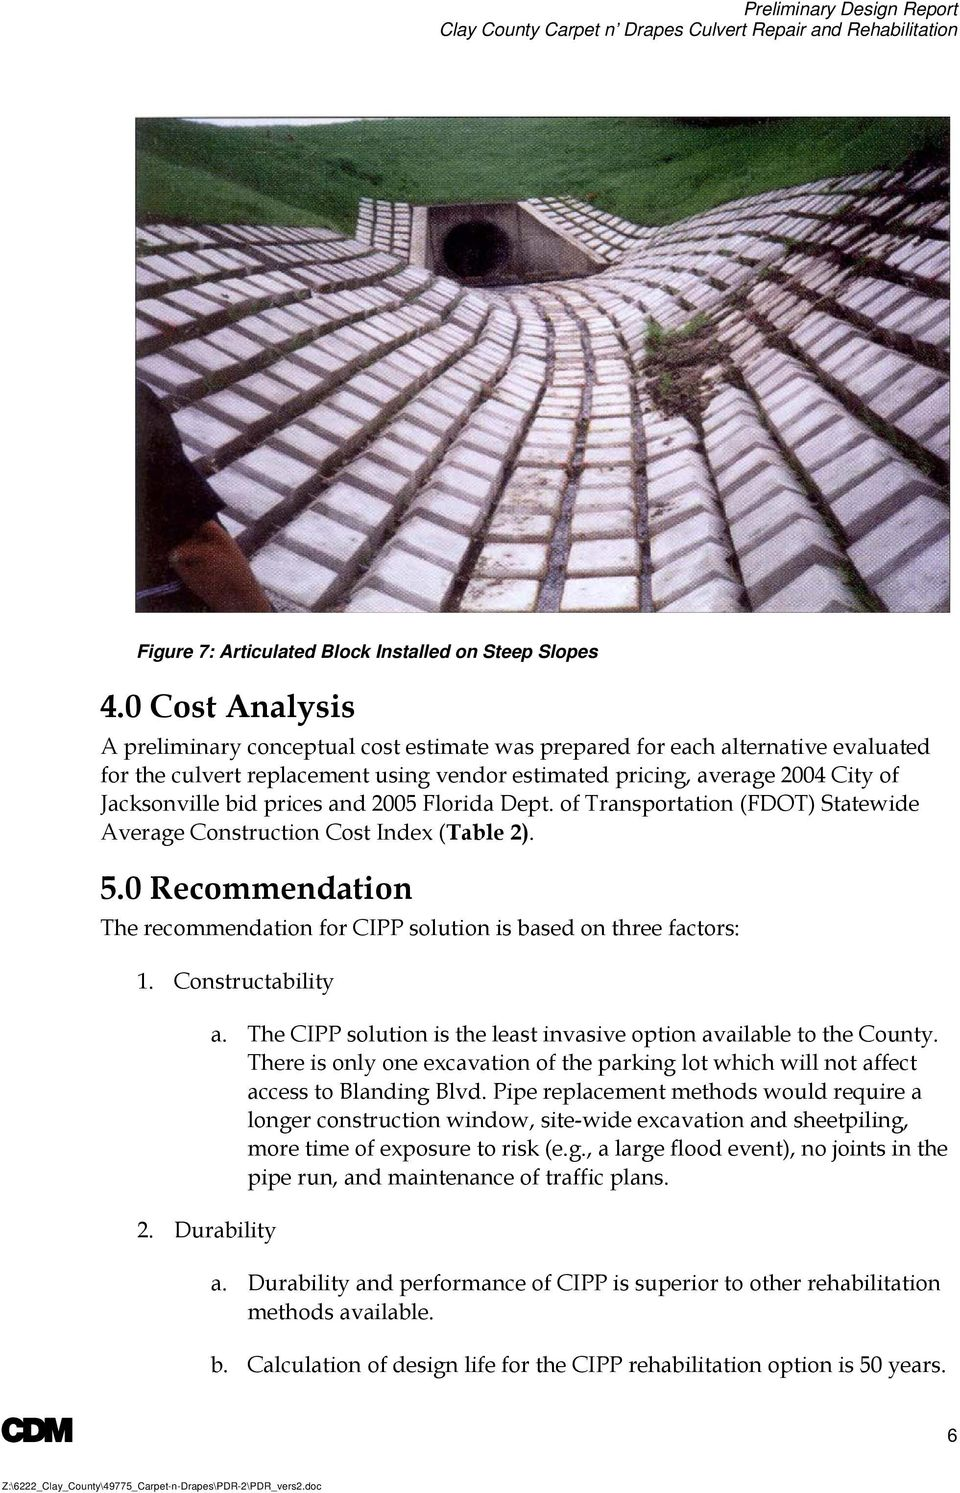 prices and 2005 Florida Dept. of Transportation (FDOT) Statewide Average Construction Cost Index (Table 2). 5.0 Recommendation The recommendation for CIPP solution is based on three factors: 1.